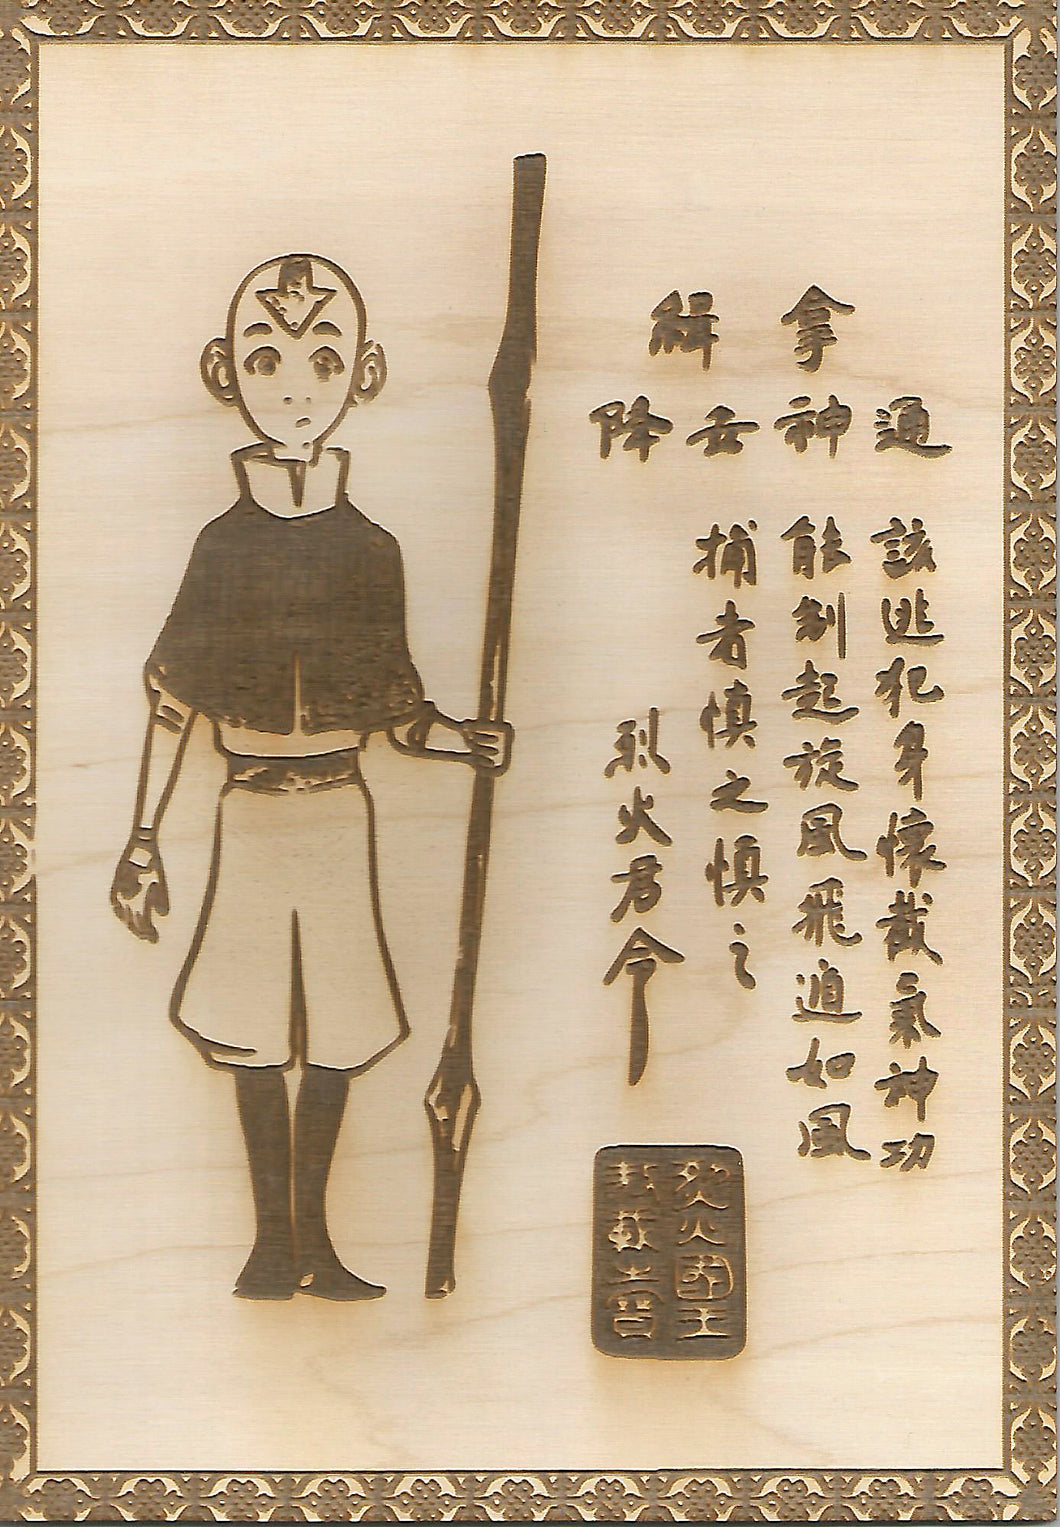 Avatar the Last Airbender- Aang Wooden Wanted Poster - TantrumCollectibles.com